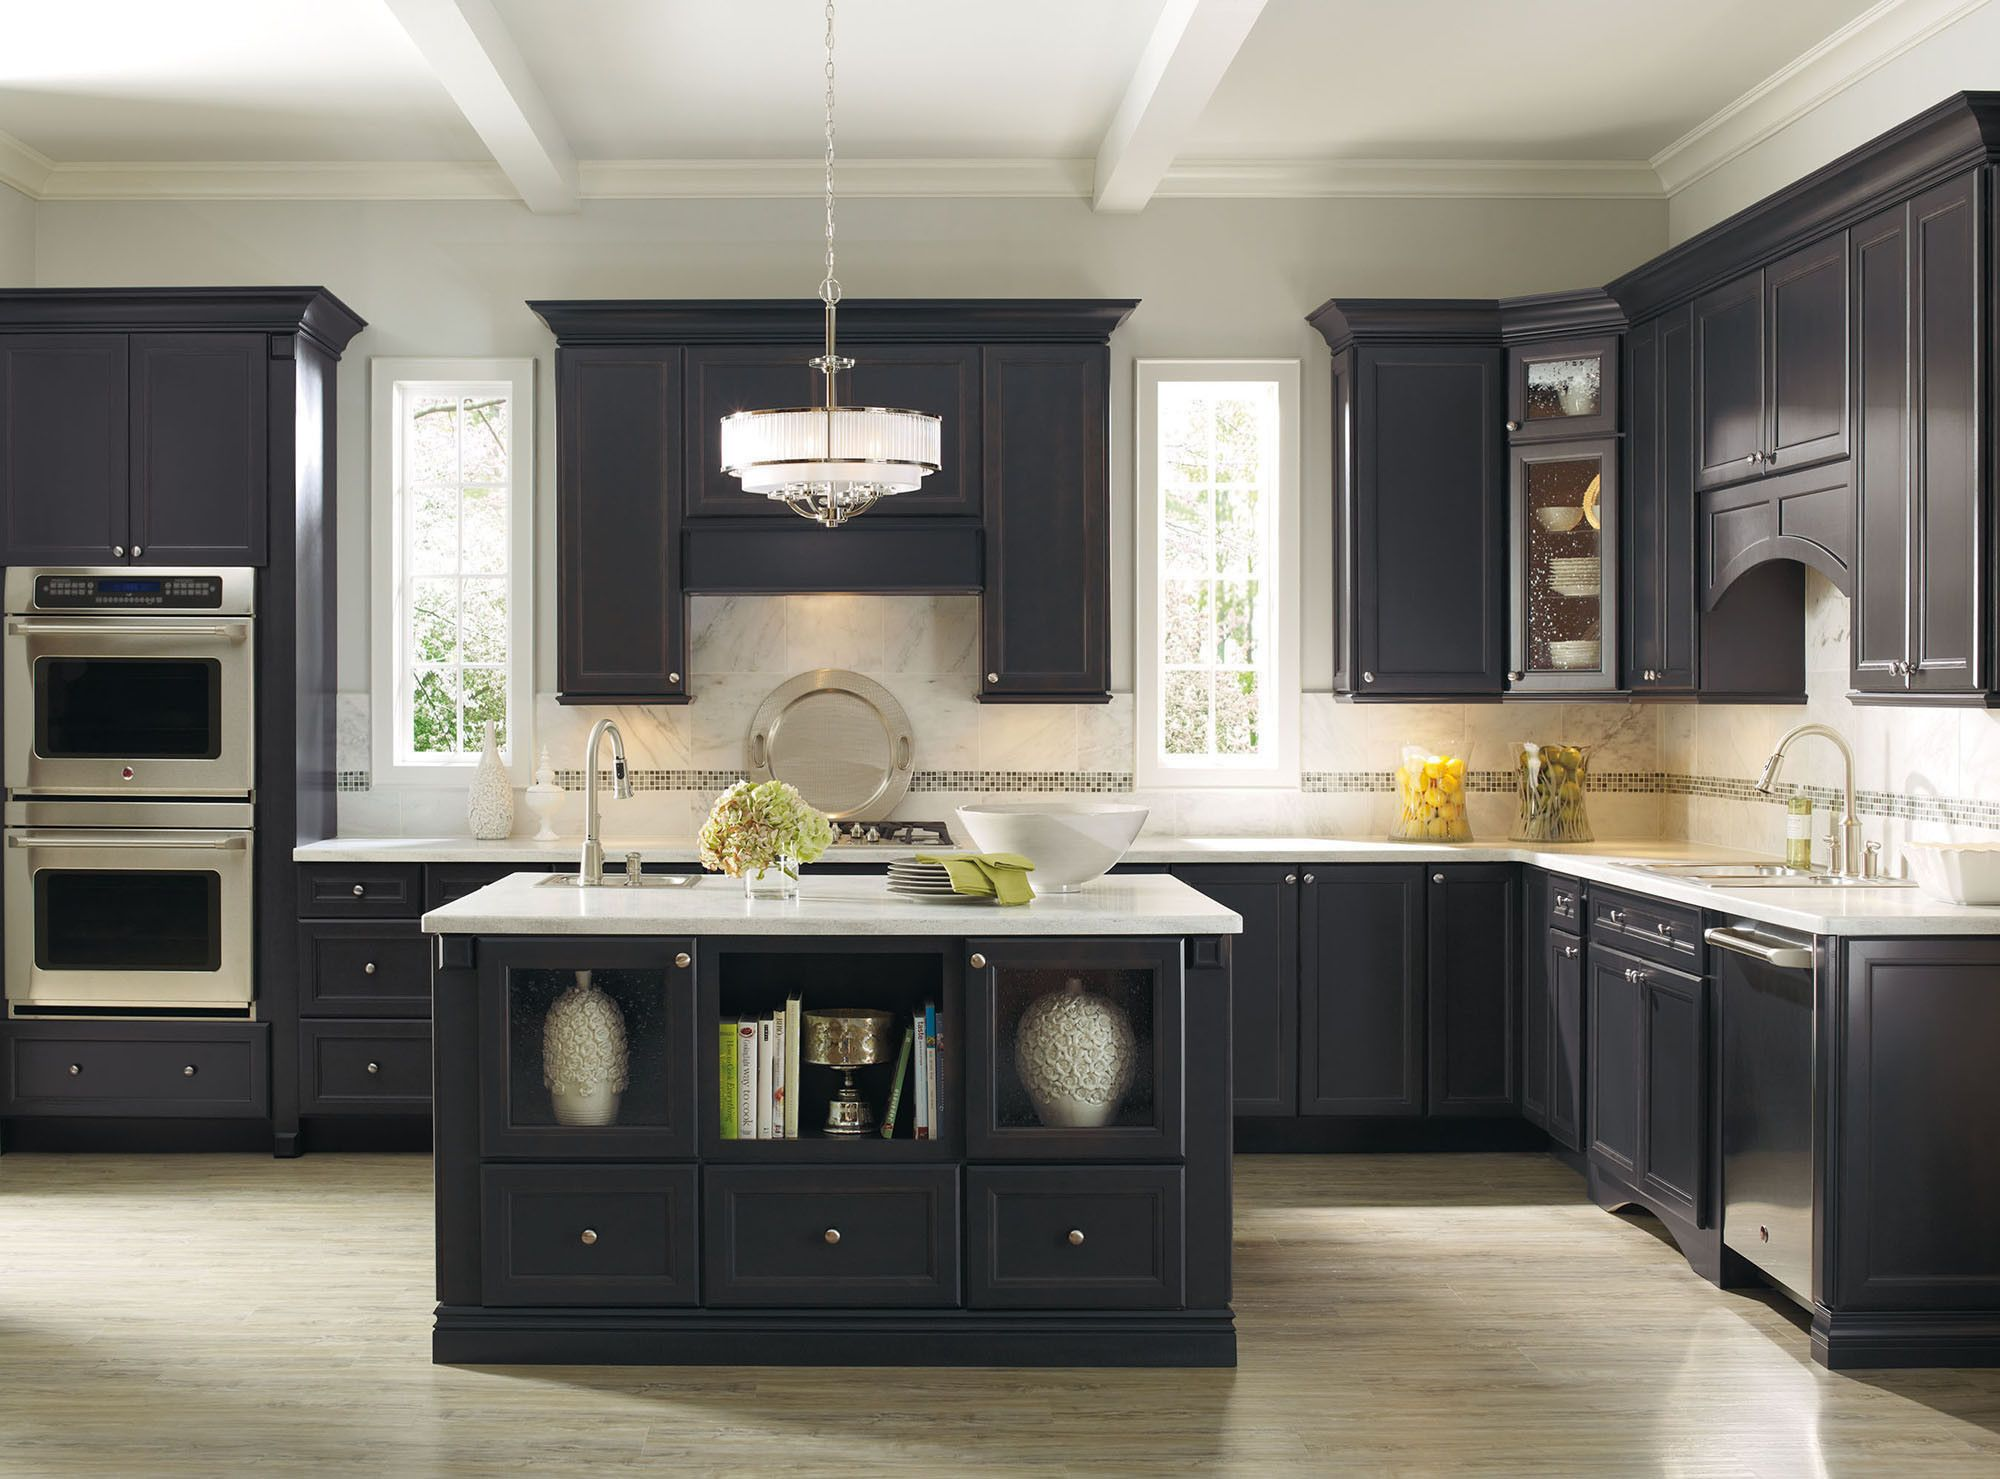 Houzz Dark Gray Kitchen Cabinets Grey Kitchen Inspiration White Kitchen Decor Kitchen Countertops White Cabinets